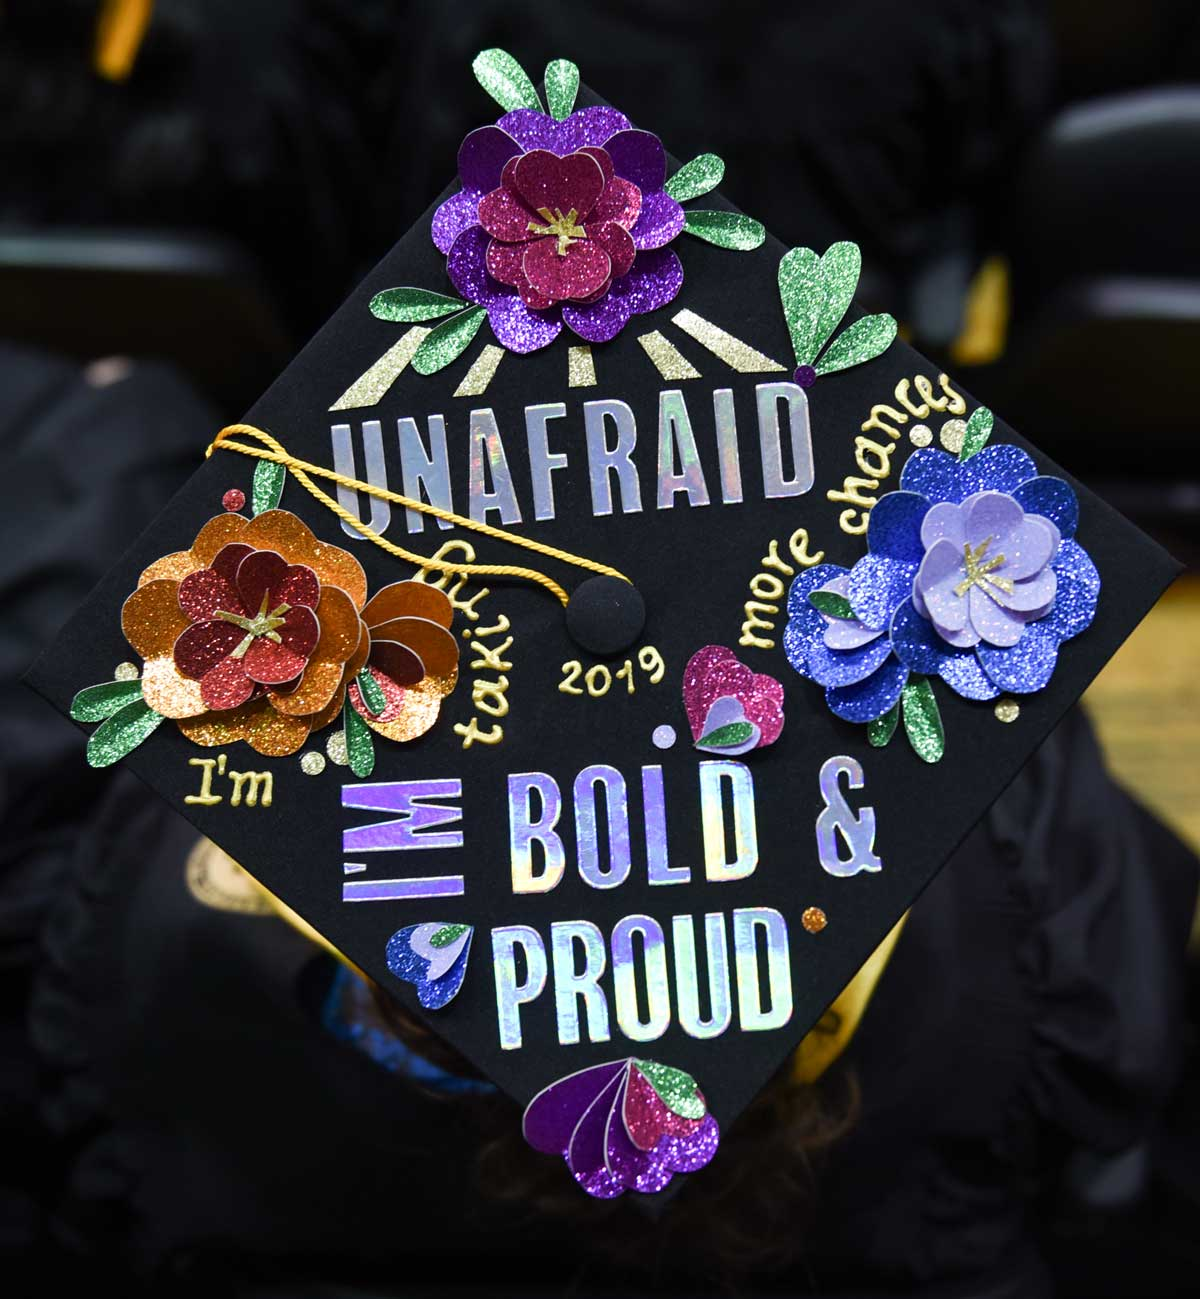 Grad cap decorated with text: Unafraid I'm bold & proud